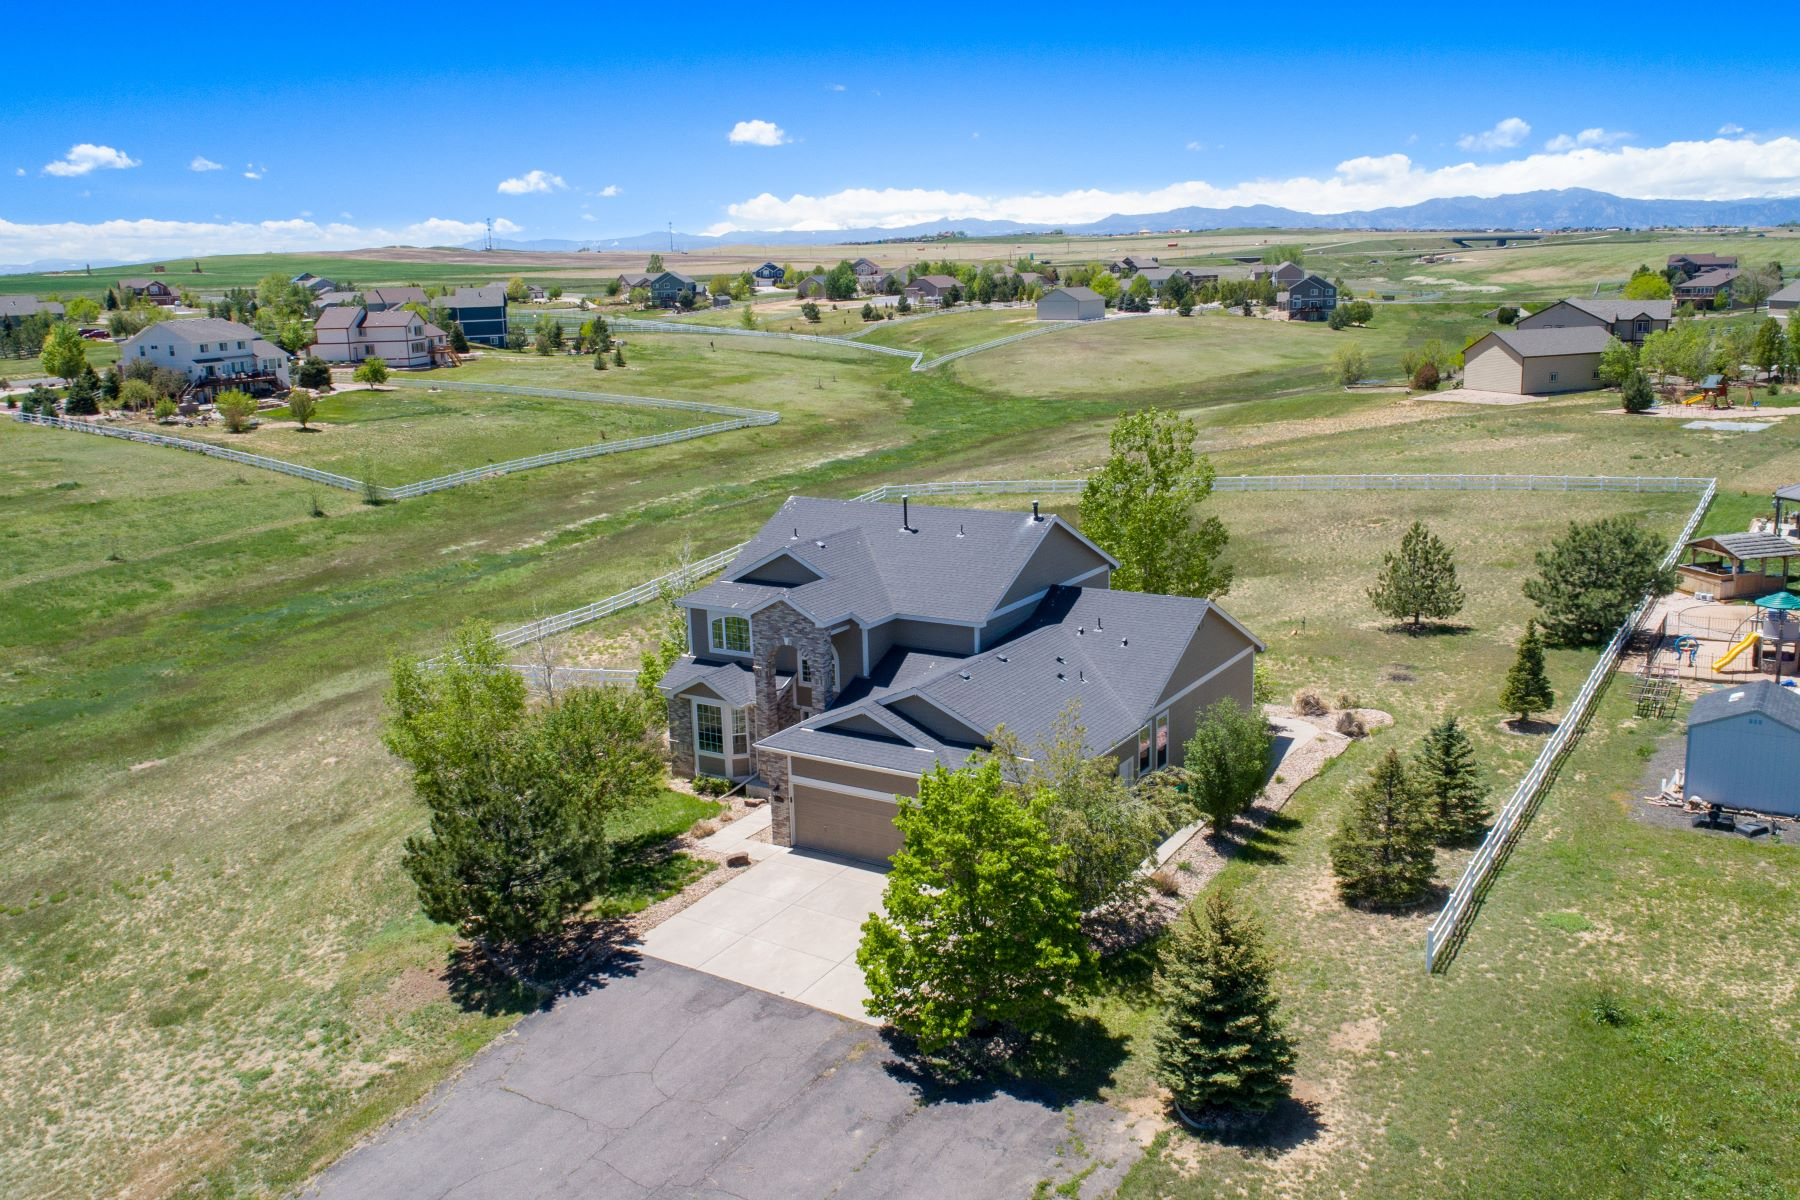 Single Family Homes for Sale at The Quiet Country Setting You've Always Dreamed Of! 8700 Ehler Parkway Thornton, Colorado 80602 United States